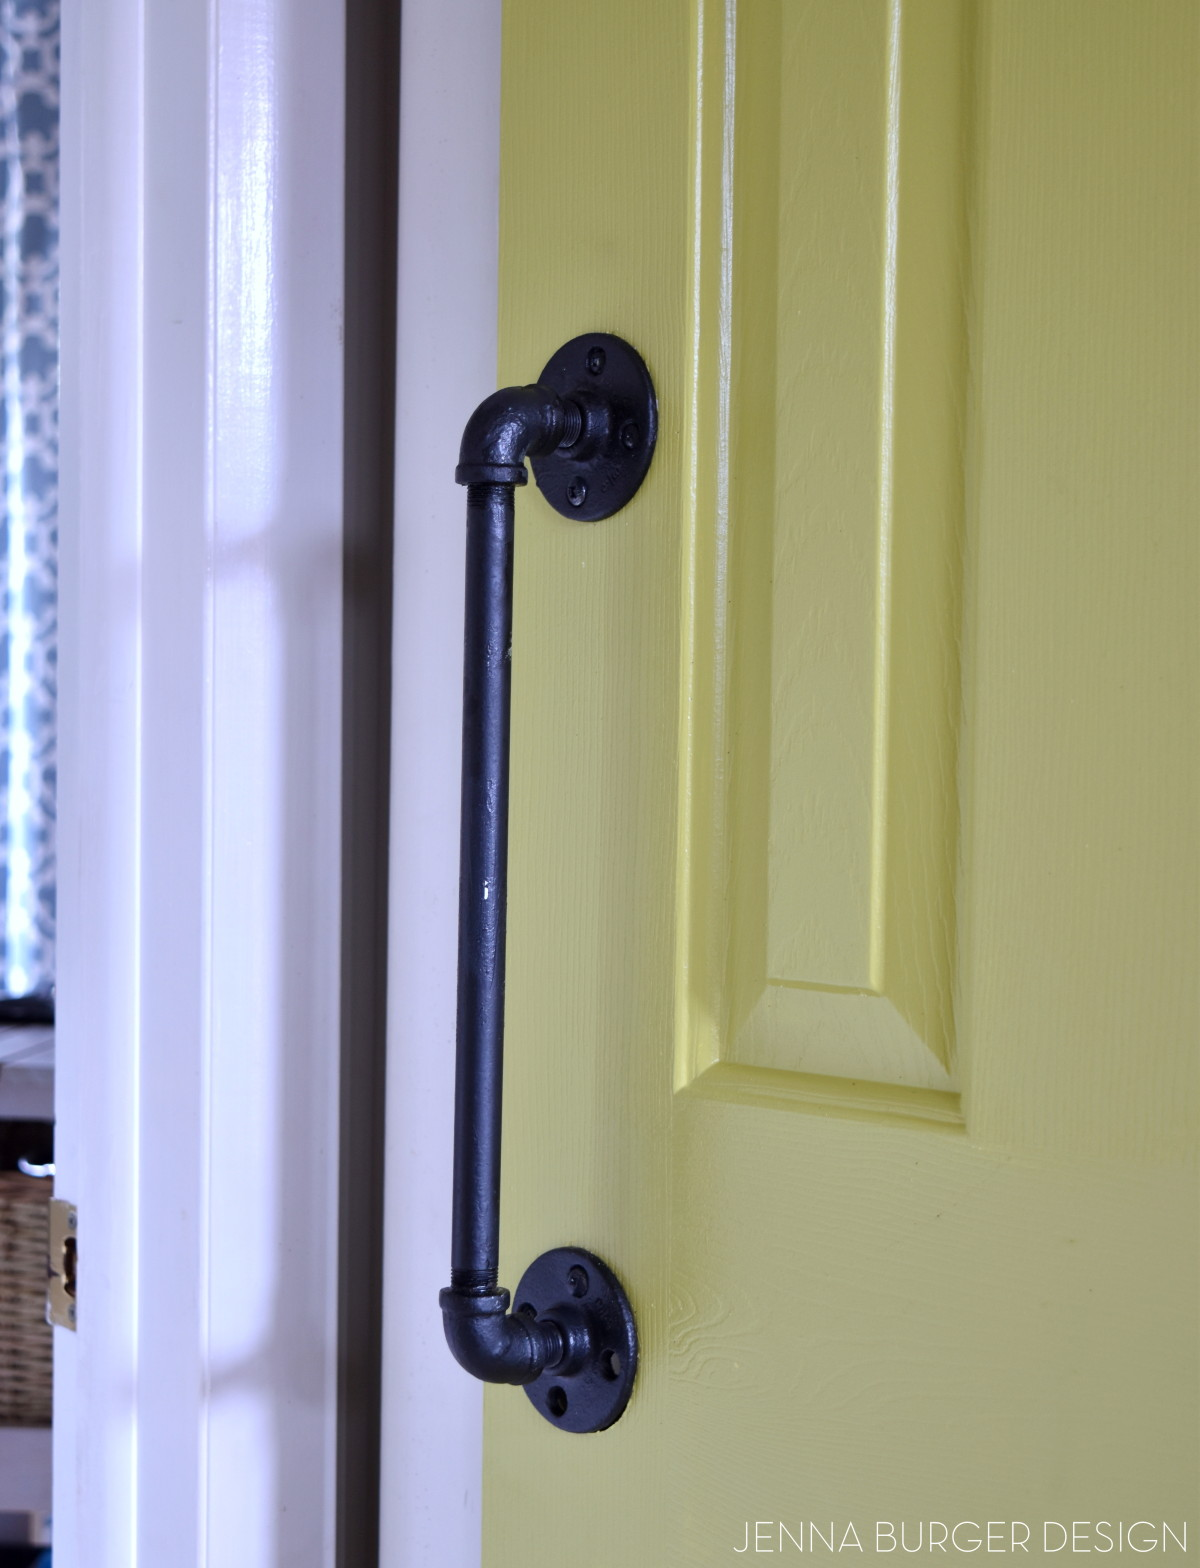 Decorating rolling door hardware photographs : DIY Rolling Door Hardware using Plumbing Pipe - Jenna Burger